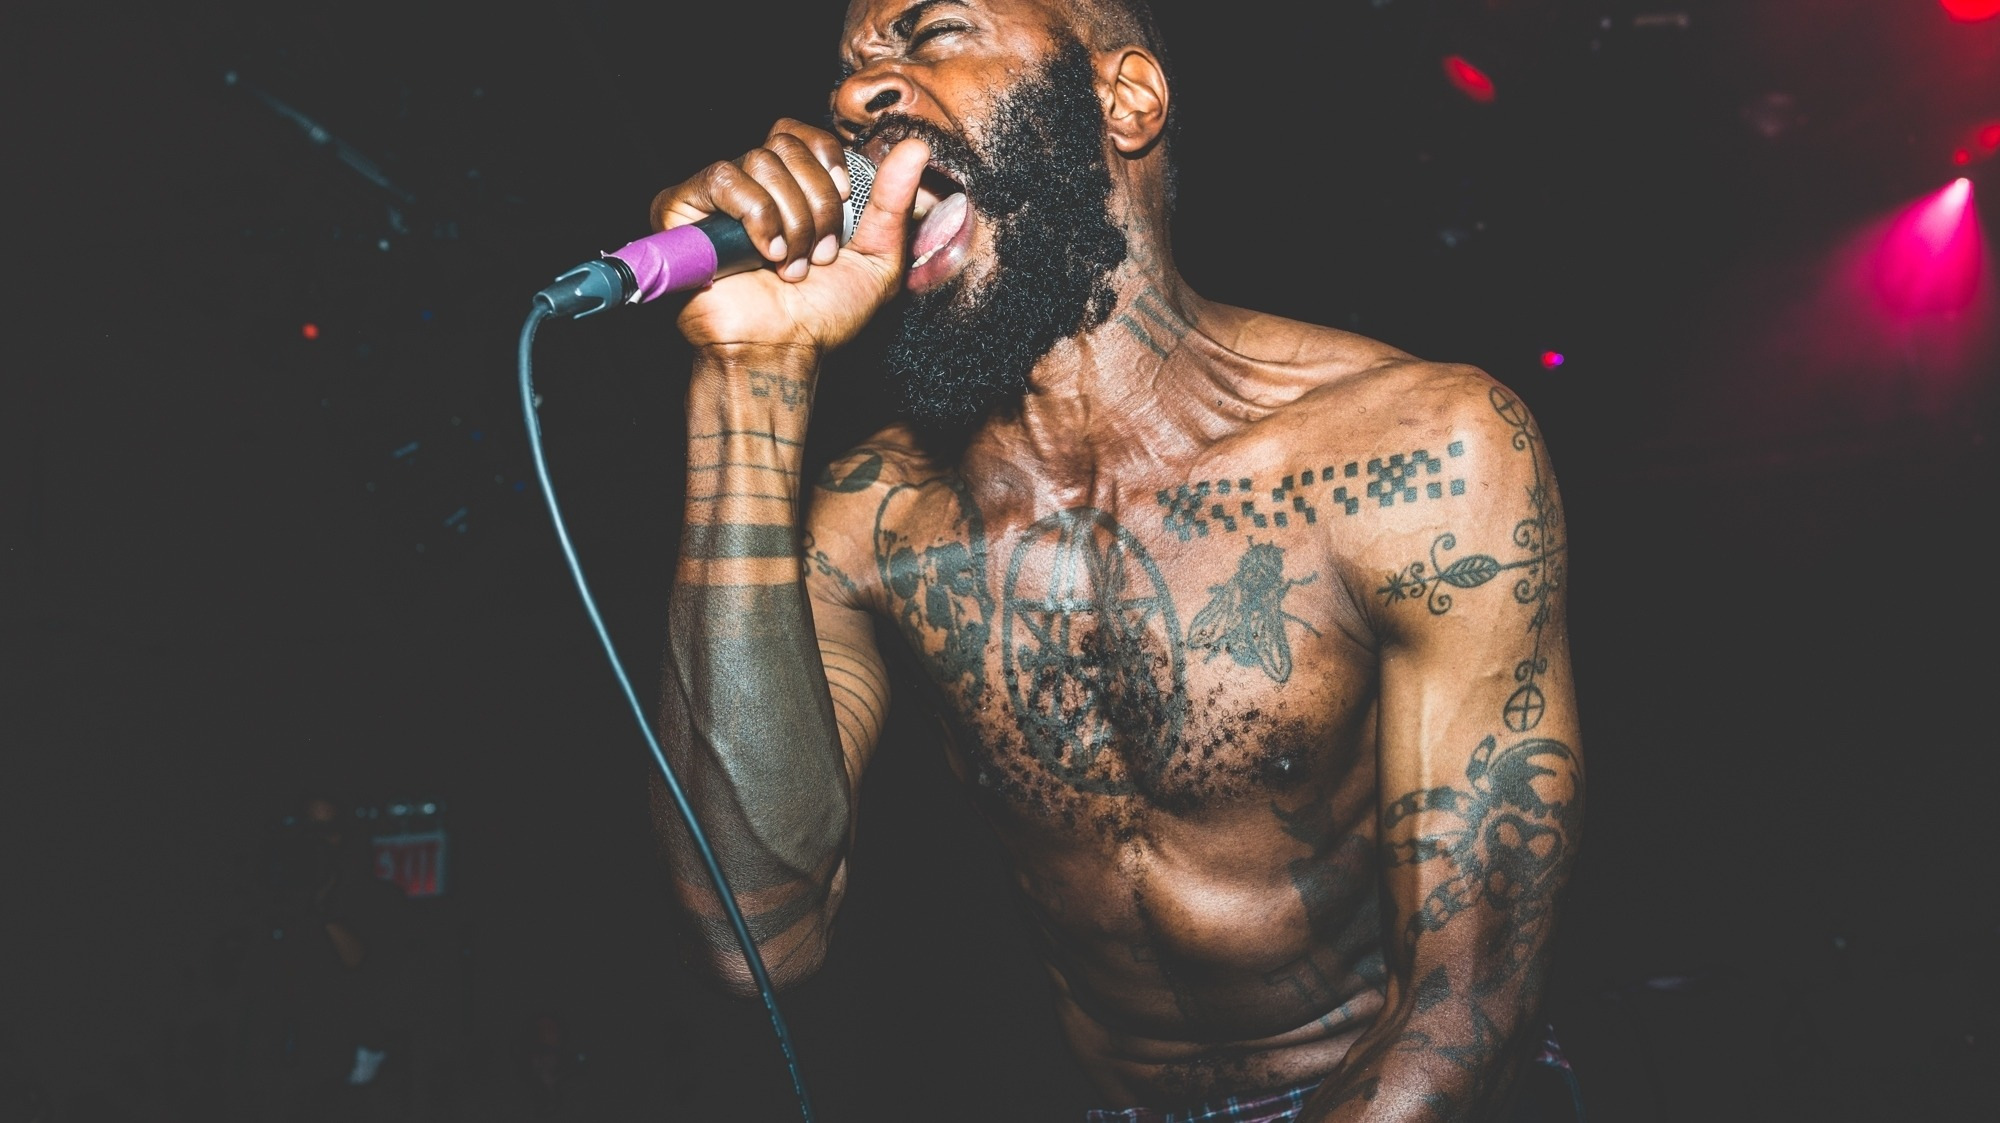 Photo of 6 Giugno al Monk: i Death Grips raggiungono la capitale